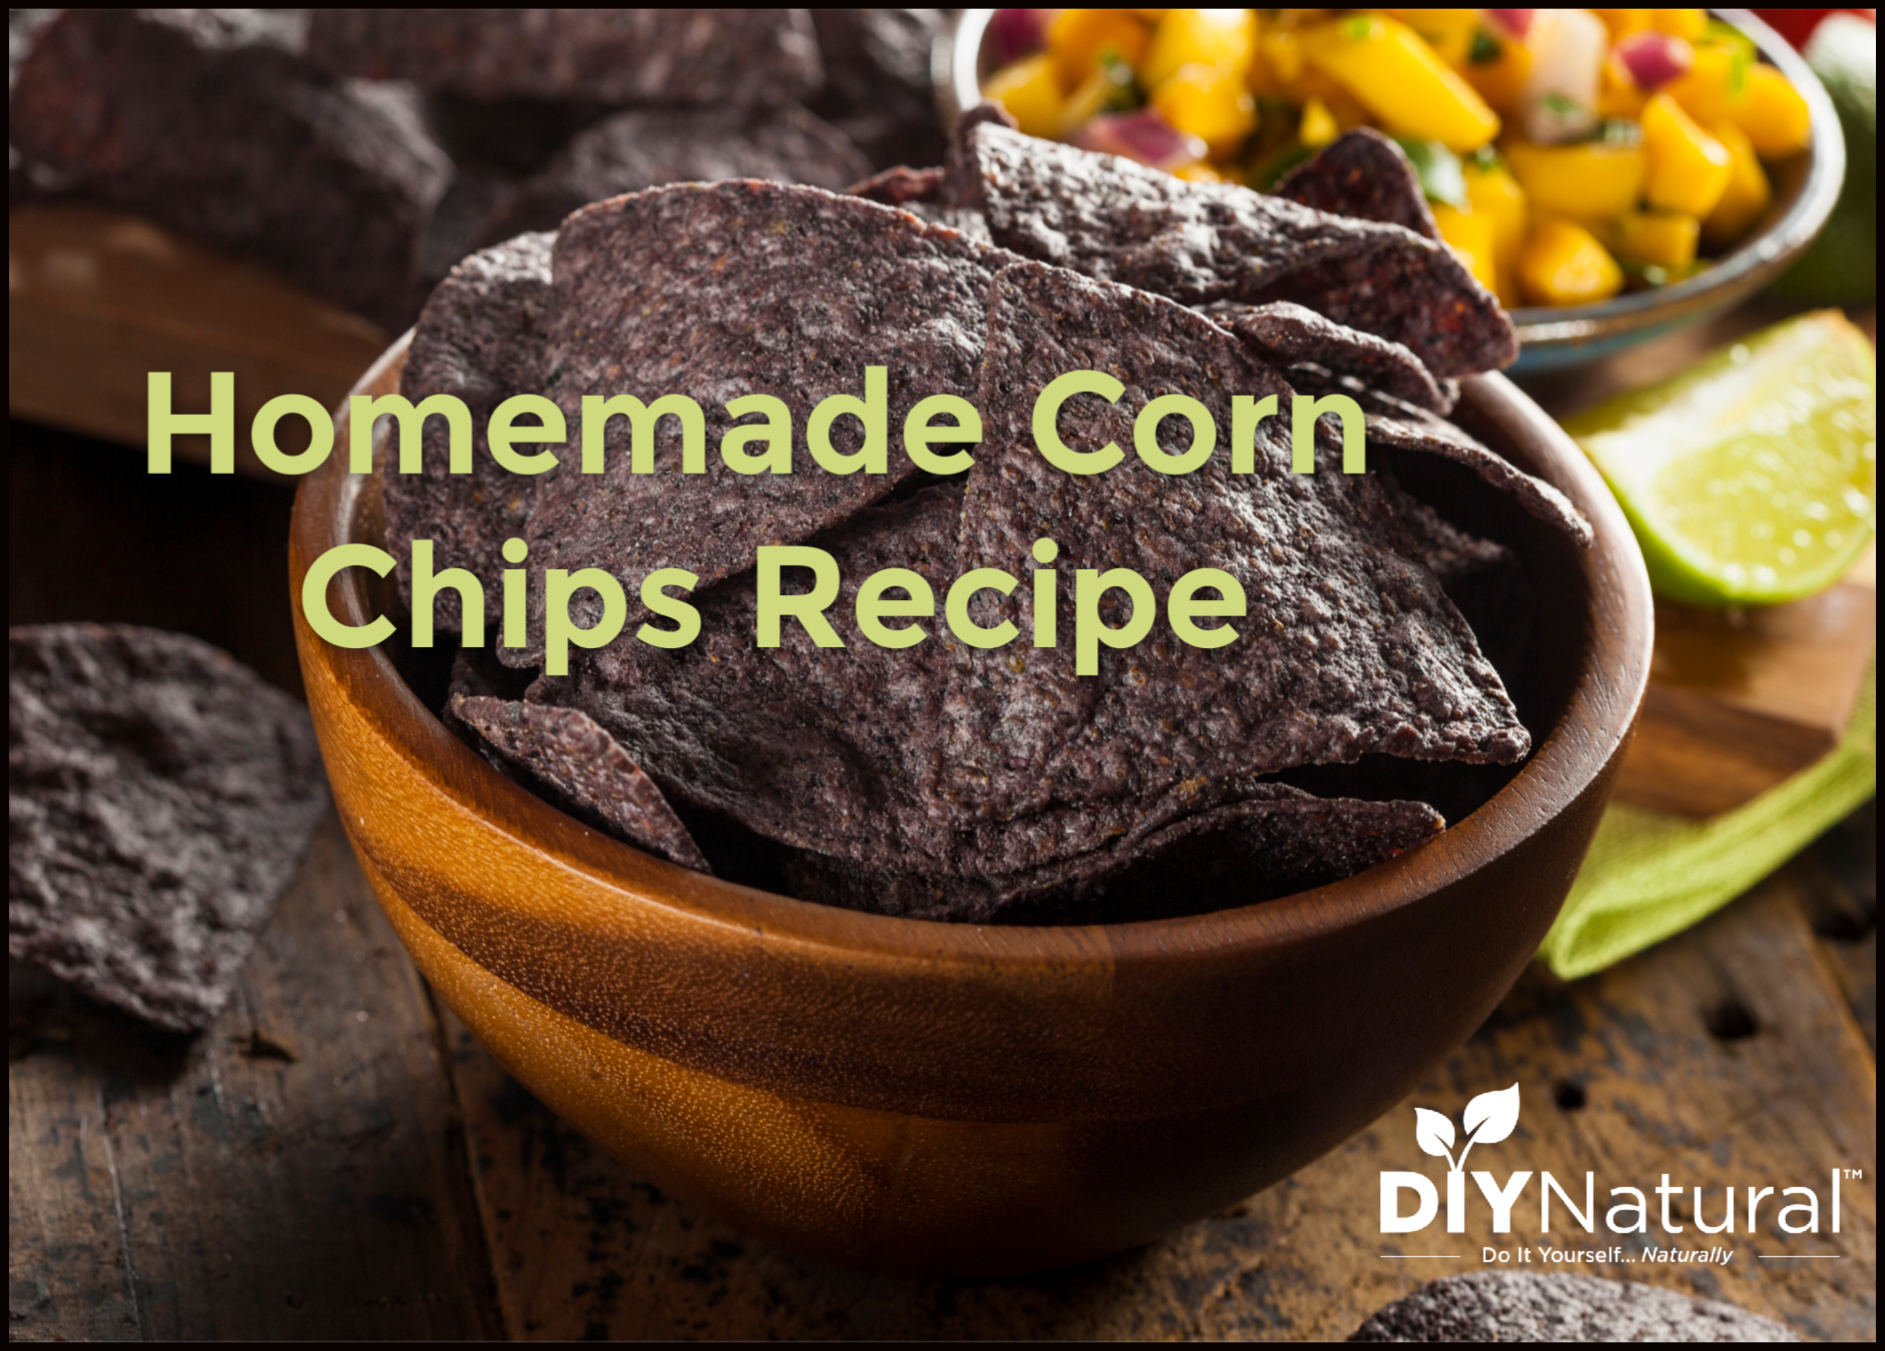 A Simple & Delicious Homemade Corn Chips Recipe!